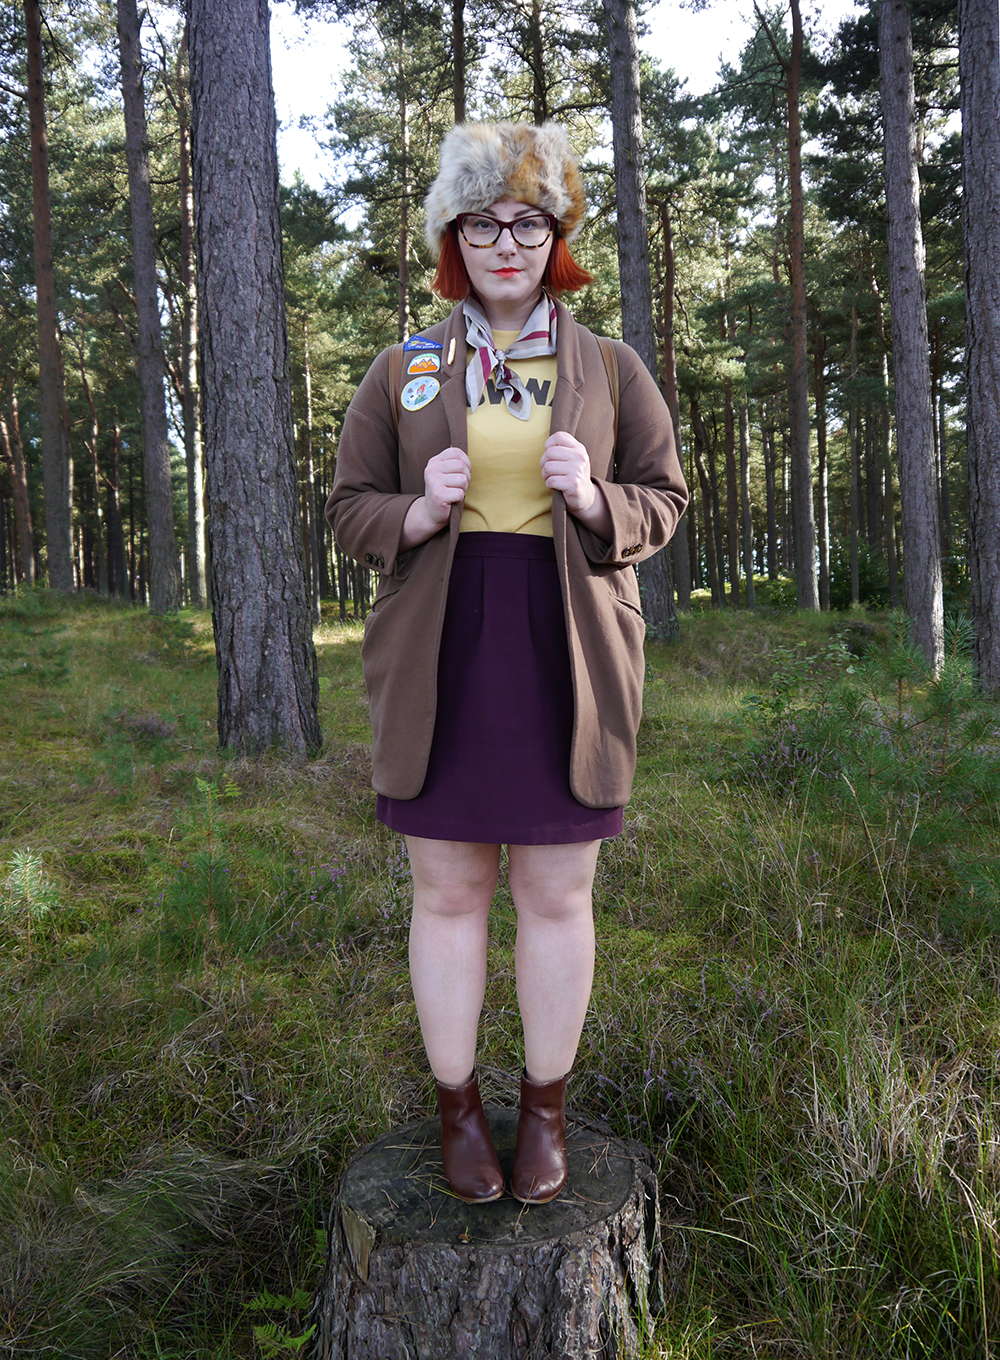 khaki scouts, Scottish blogger, style blogger, Moonrise Kingdom outfit, Moonrise Kingdom style, costume idea, Wes Anderson inspired outfit, Sam Moonrise Kingdom, scout style, Moonrise kingdom inspired outfit, vintage style, fur hat, Spex Pistols glasses, patches for adventurers, Lucky Dip Club patches, Olivia Mew cat scarf, vintage Brownies tshirt, Rag Trade Vintage, primark backpack, adventurer style